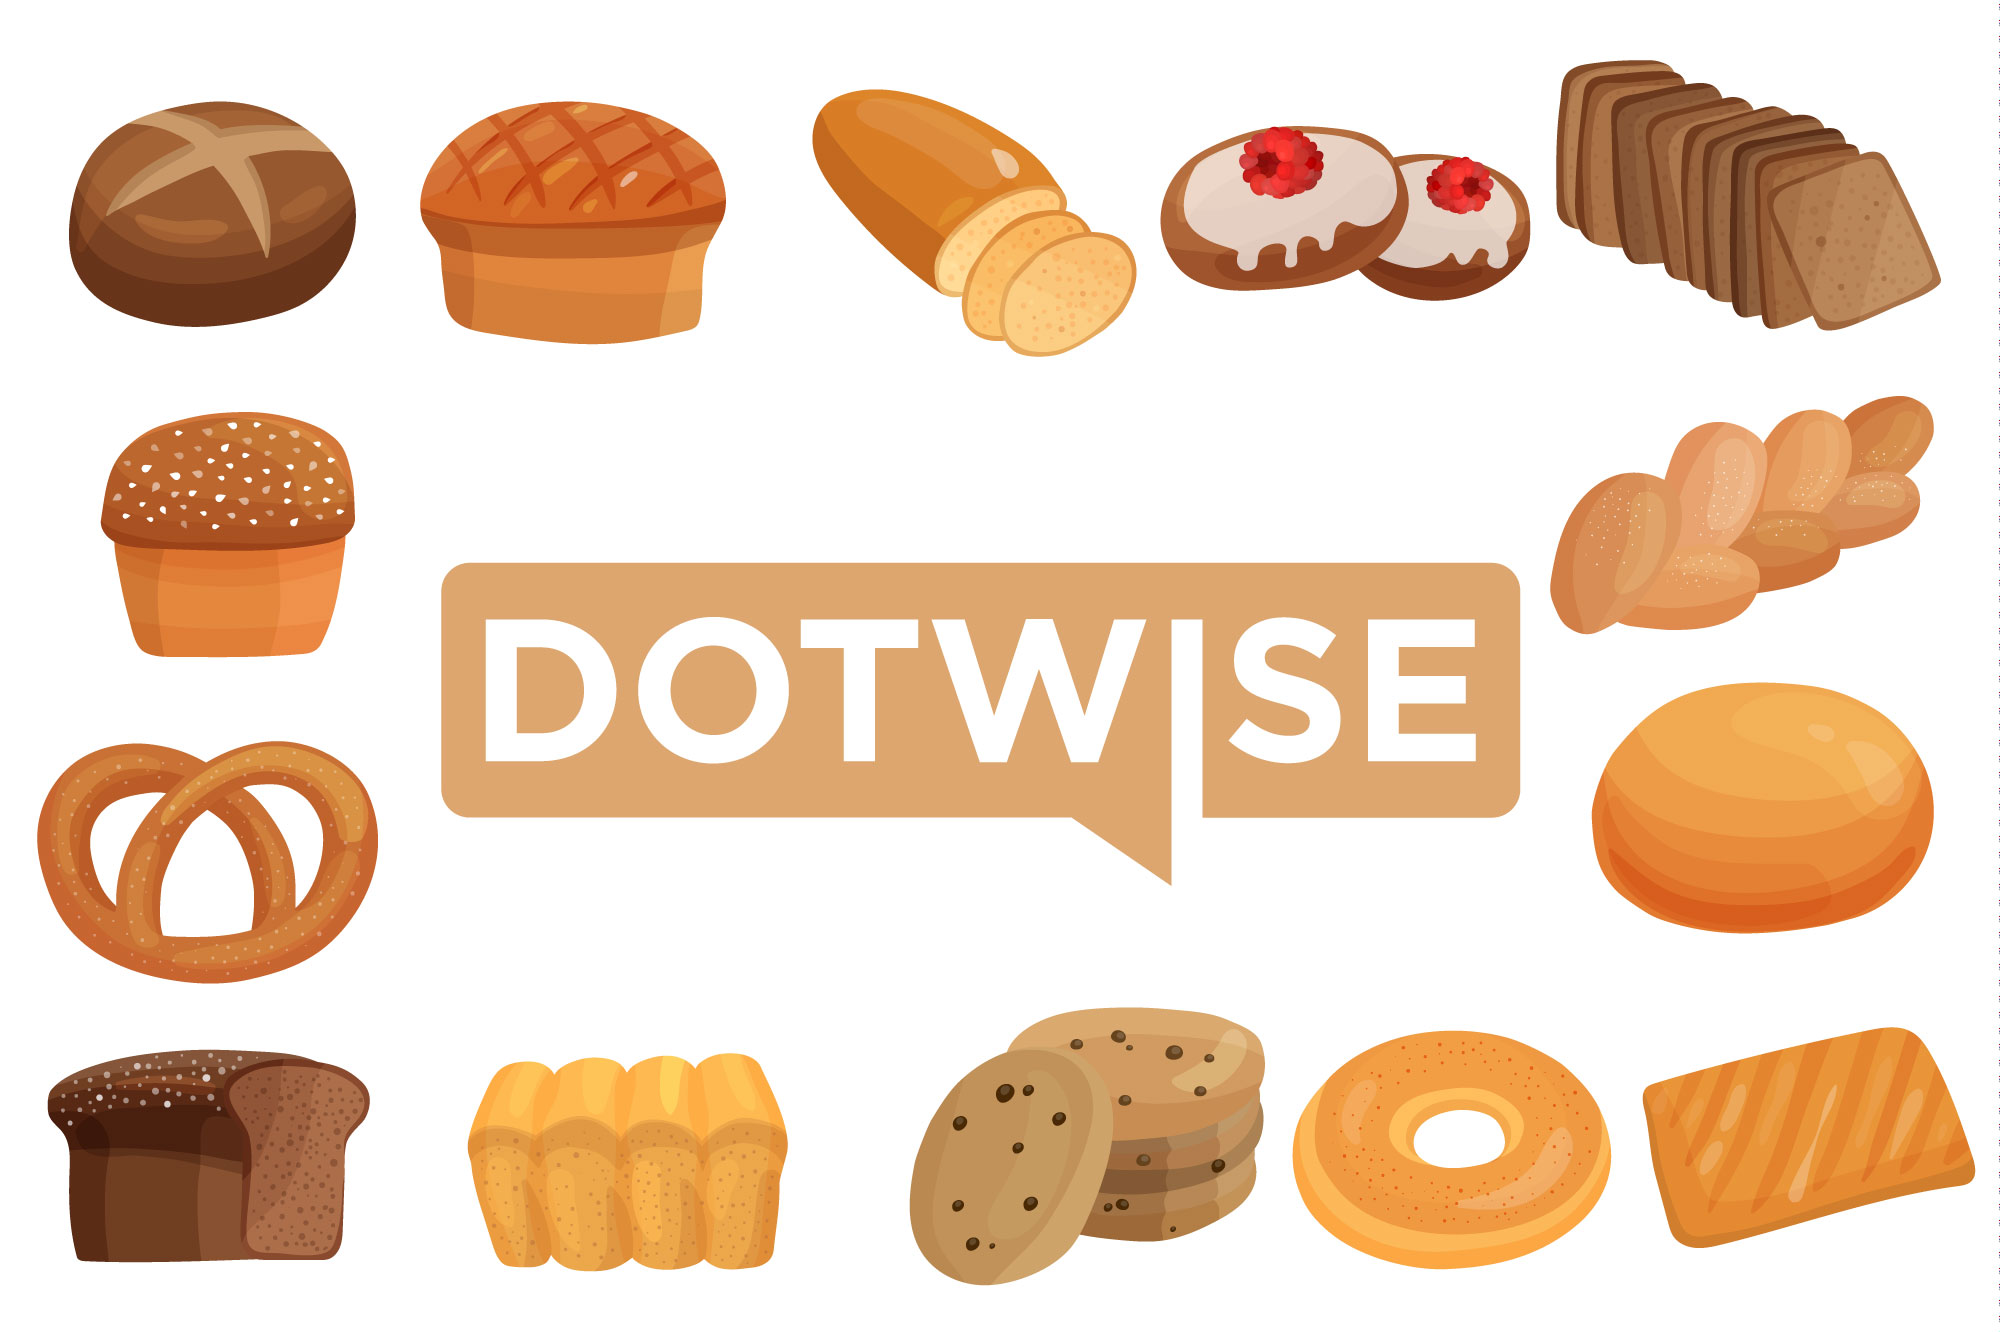 Dotwise baked goods!